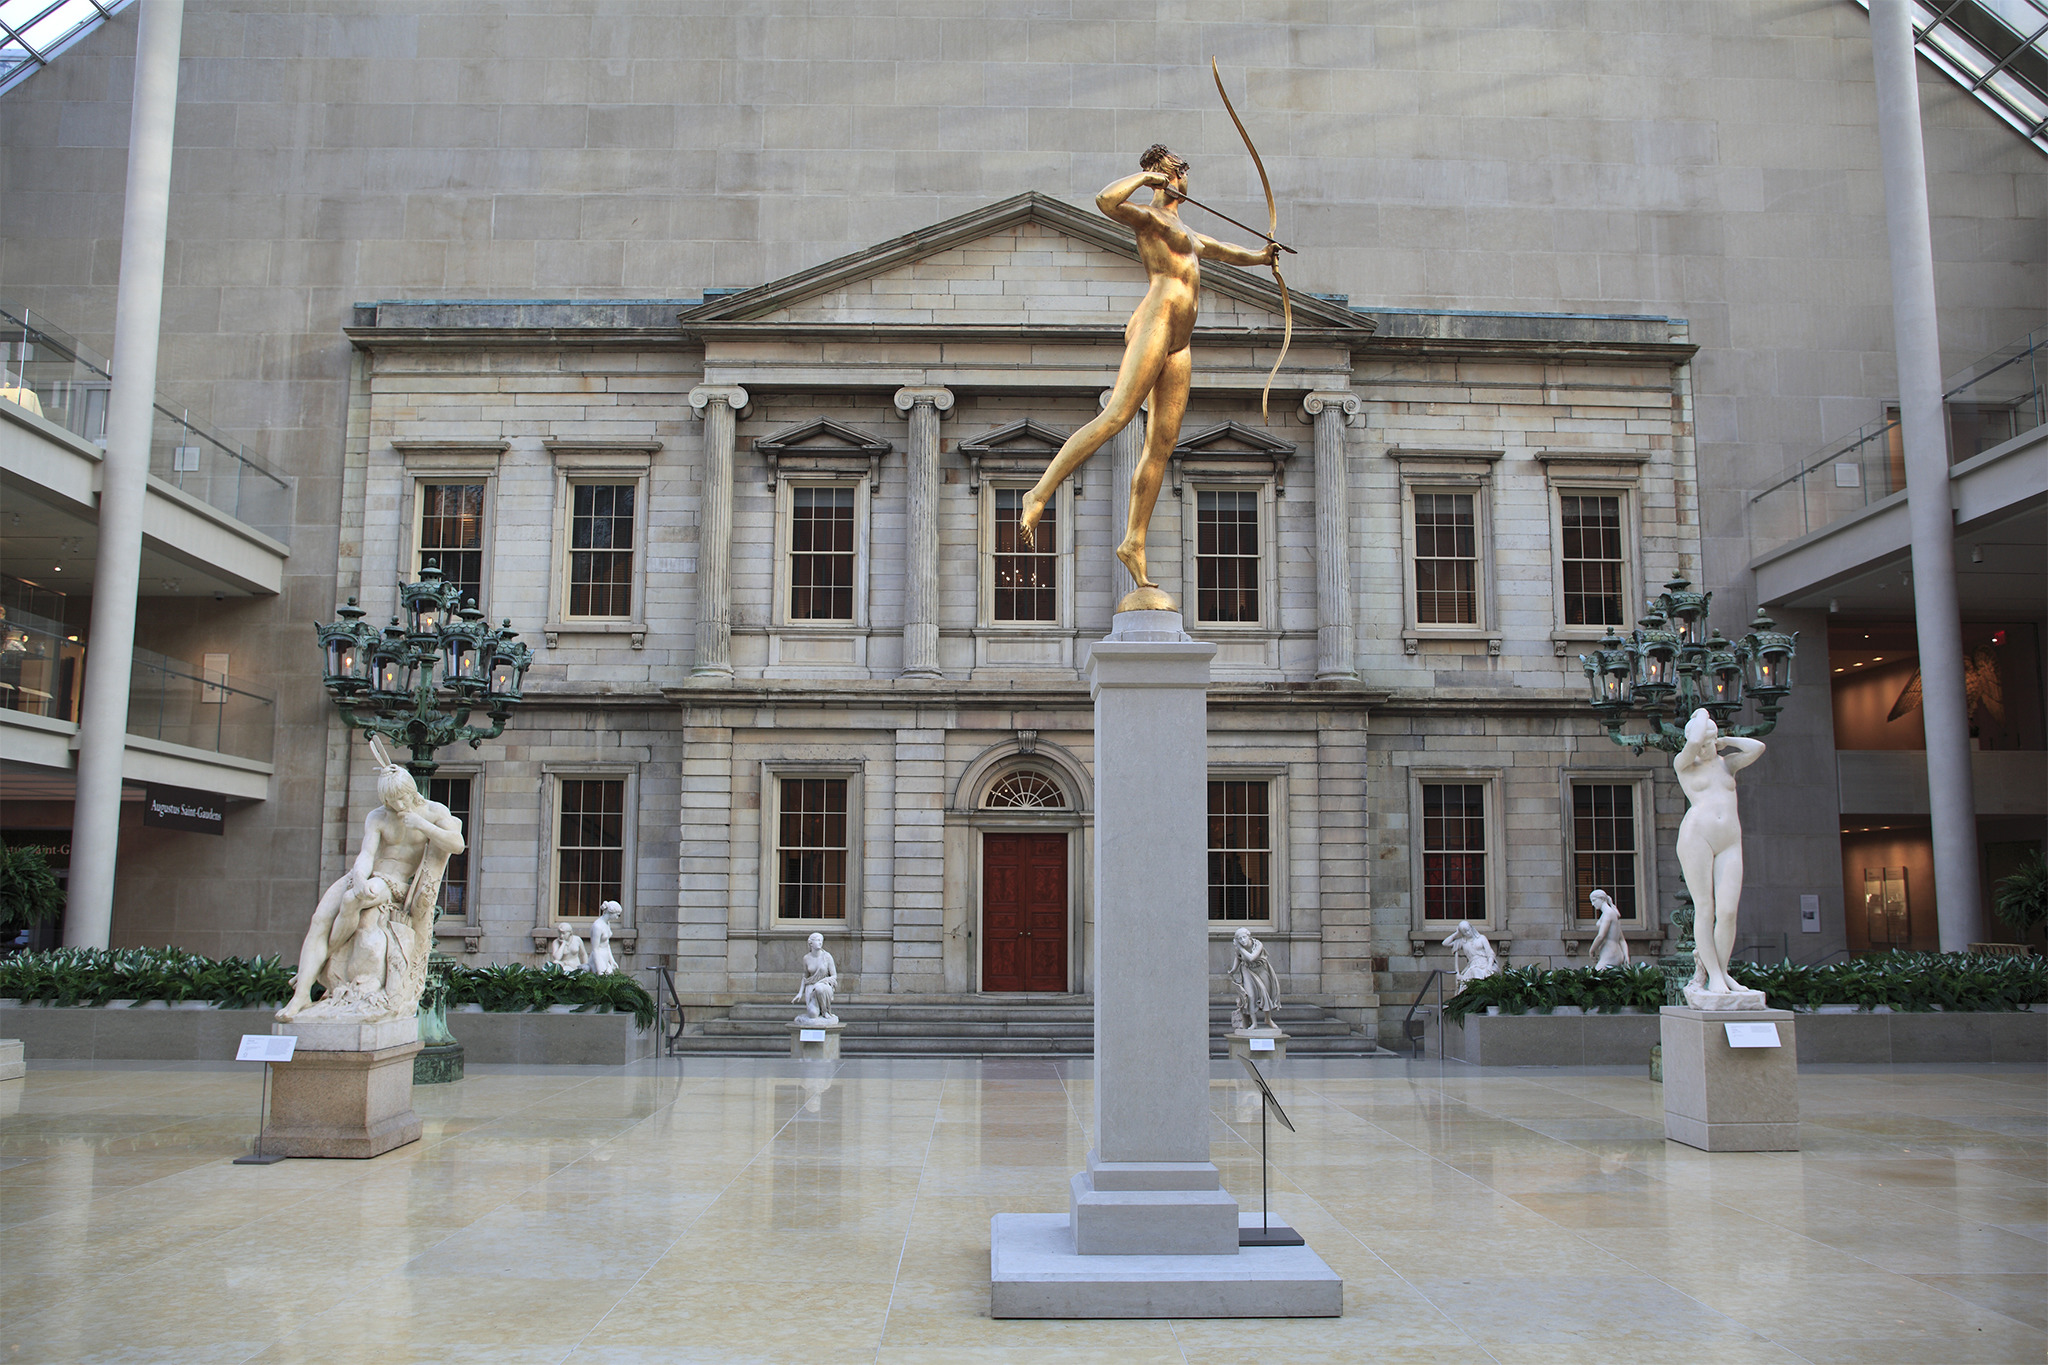 Explore the Met before it opens for the day